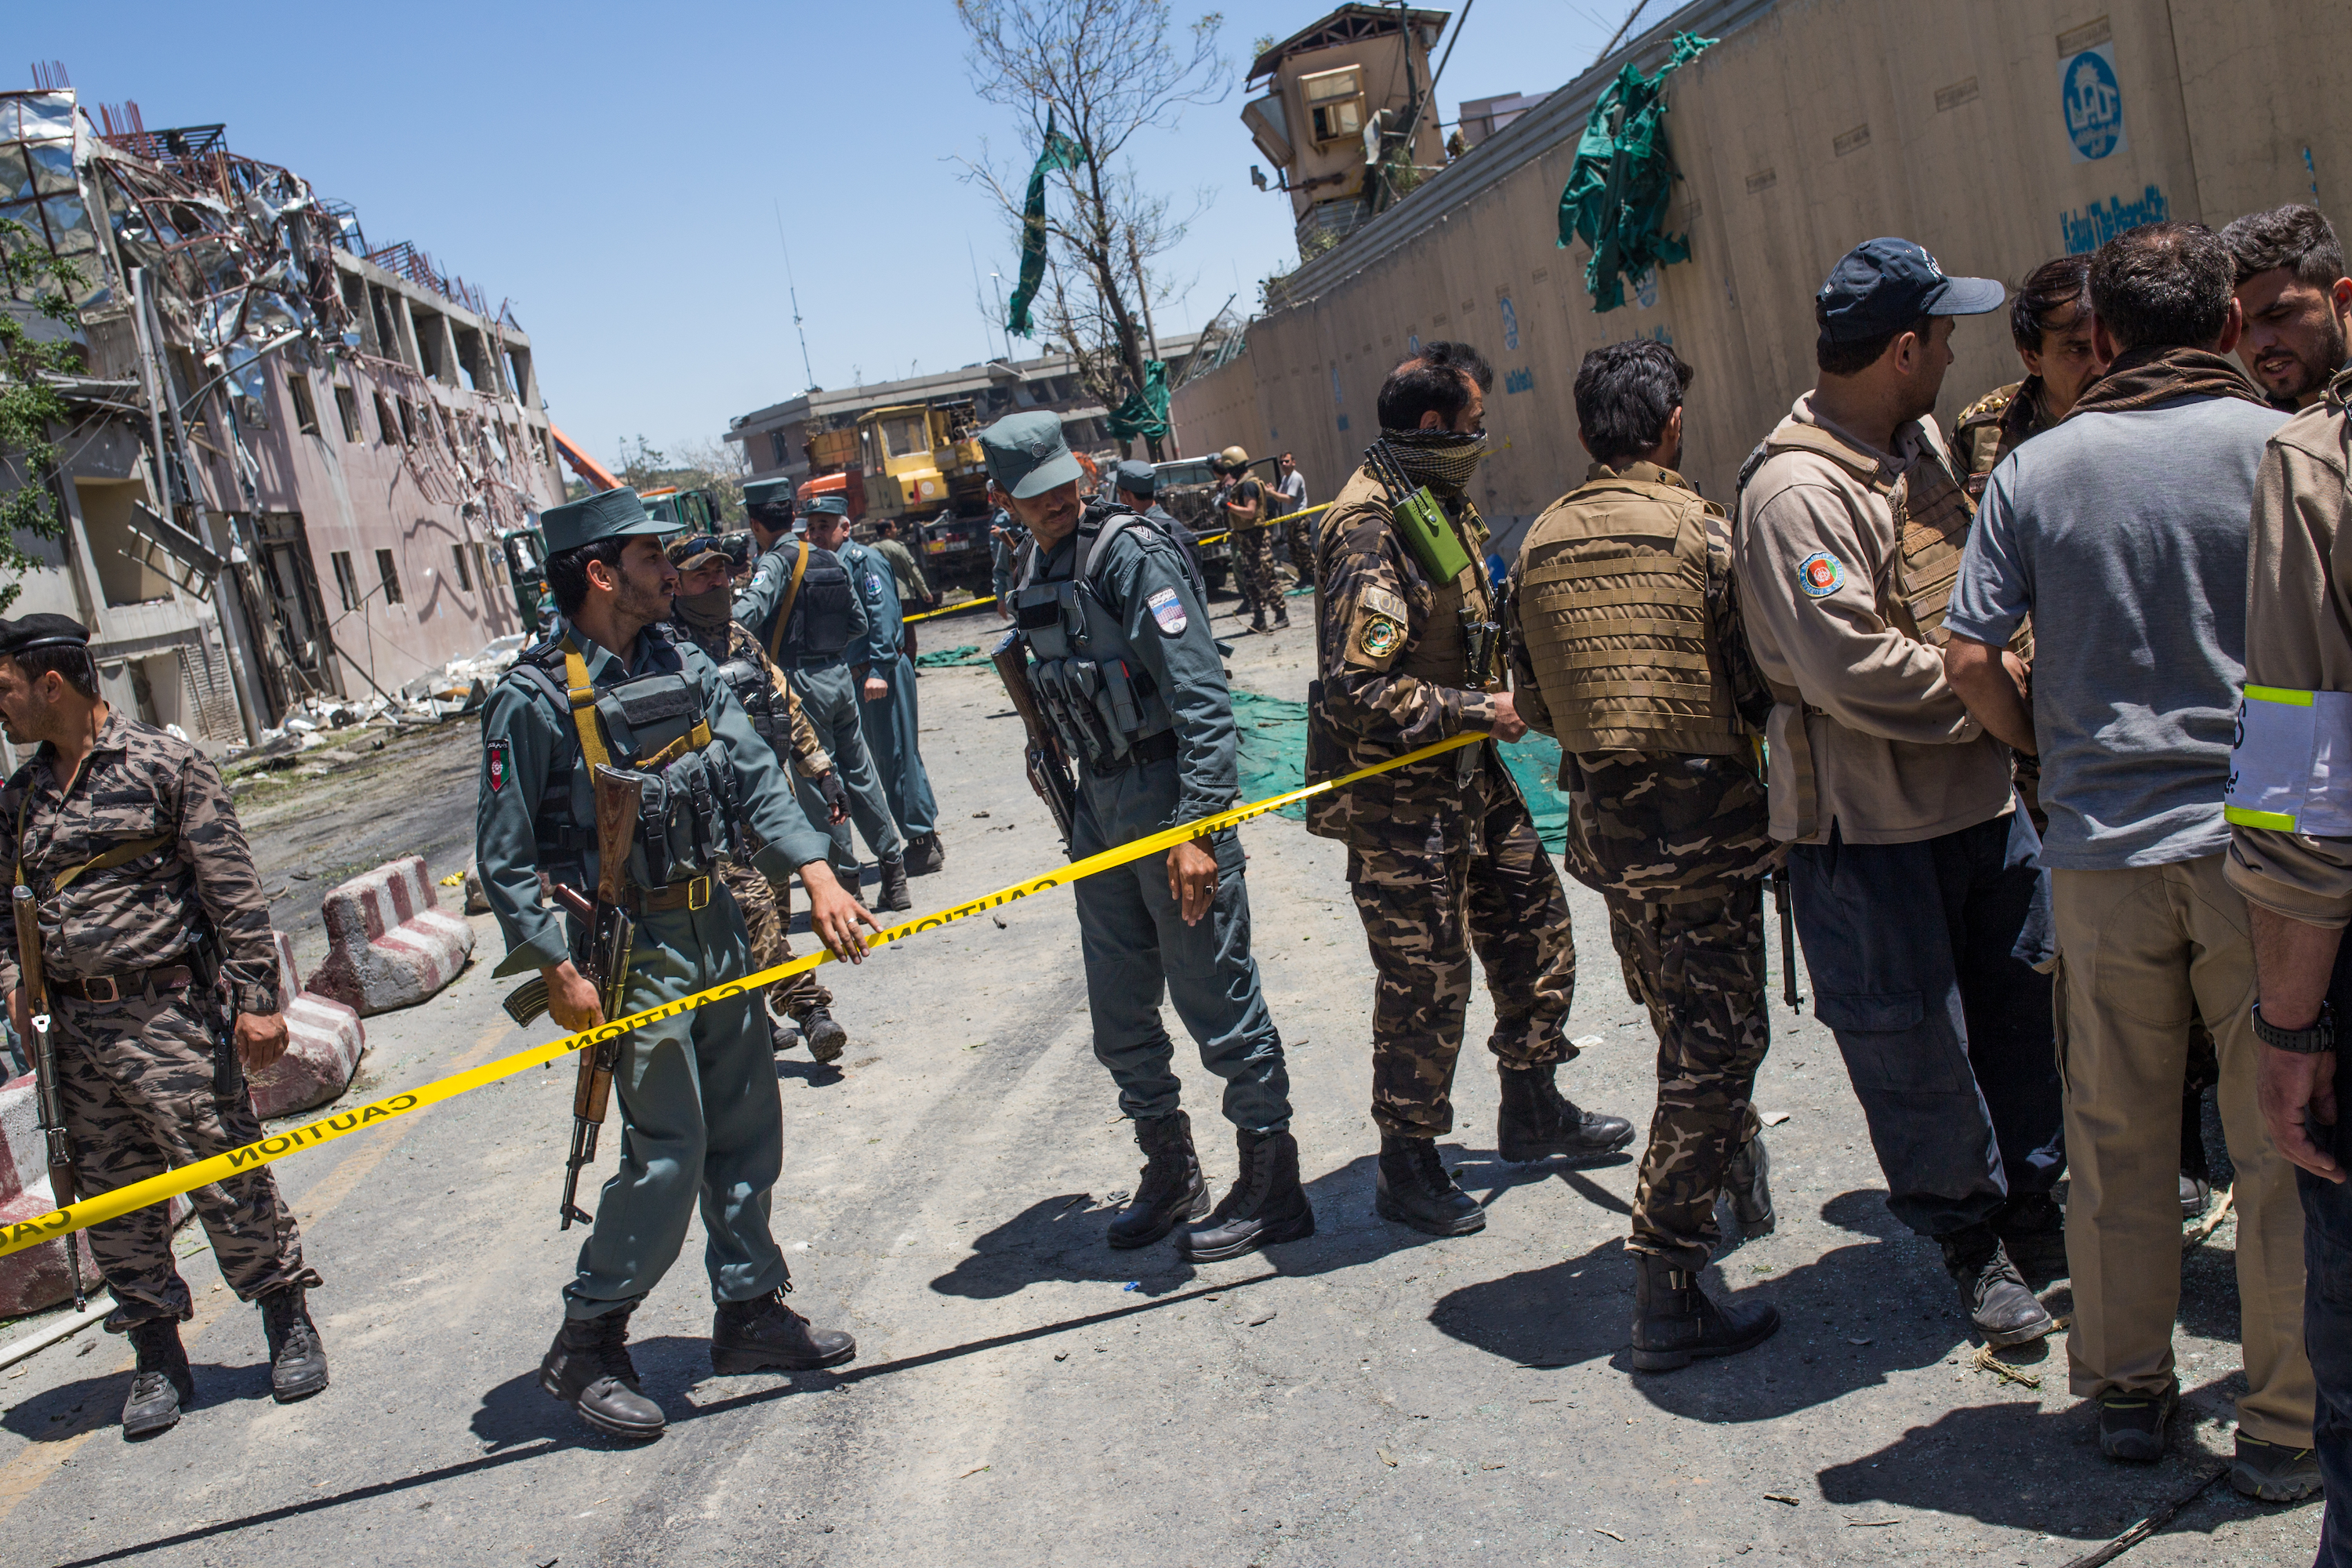 Security forces outside German embassy in Kabul, Afghanistan